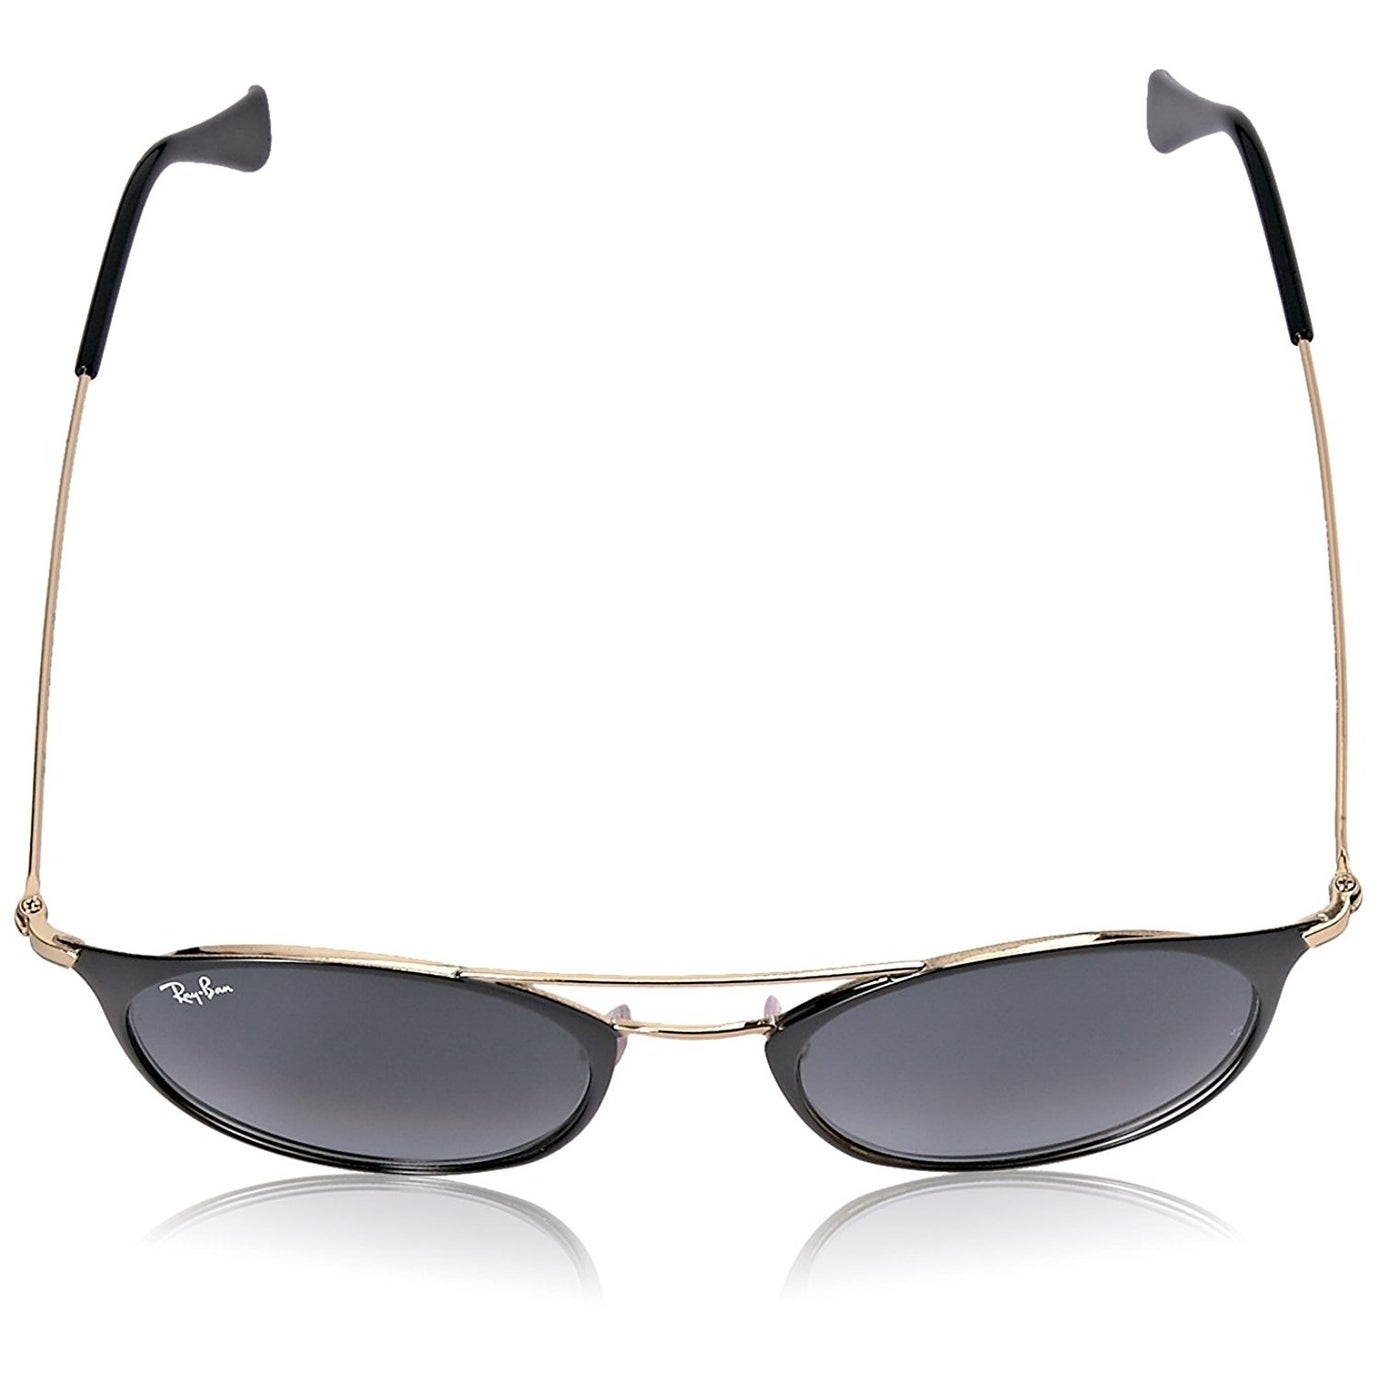 0ea92ffa2c Shop Ray-Ban Unisex RB3546 Black Gold Frame Grey Gradient 49mm Lens  Sunglasses - Free Shipping Today - Overstock - 17754390